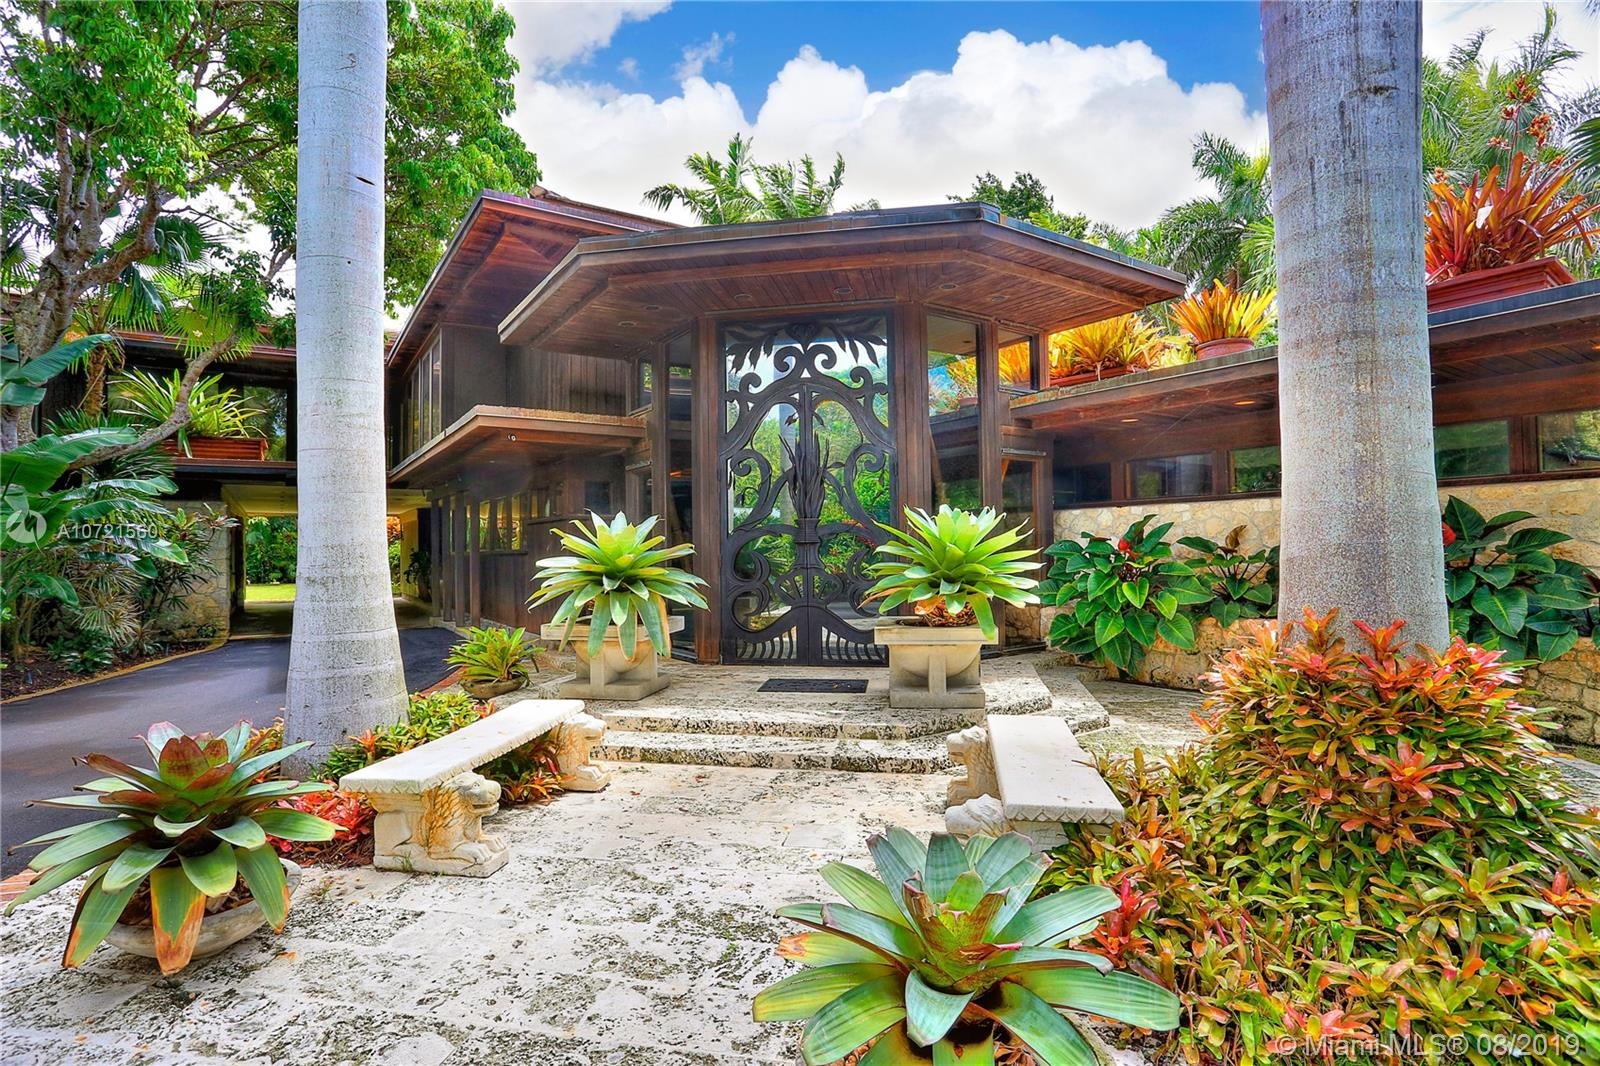 Prepare to be enchanted as you enter this stunning mid century modern estate, designed by famed architect Alfred Browning Parker. Sited on over an acre, this amazing property is a feast for the eyes and includes sprawling green lawns, sparkling fish lagoons, fountains, a separate guest cottage and lavish pool area. This idyllic tribute to one of Miami's most iconic designers of unforgettable properties has it all!! Significantly expanded and renovated by the current owners with great care in maintaining the integrity of the original design and employing the highest quality materials and workmanship; impact windows, modern kitchen and bathrooms, large and impressive art walls. Enjoy 6 bedrooms, 5.5 baths amid one of Miami's prettiest garden settings in the prime Ponce-Davis area.